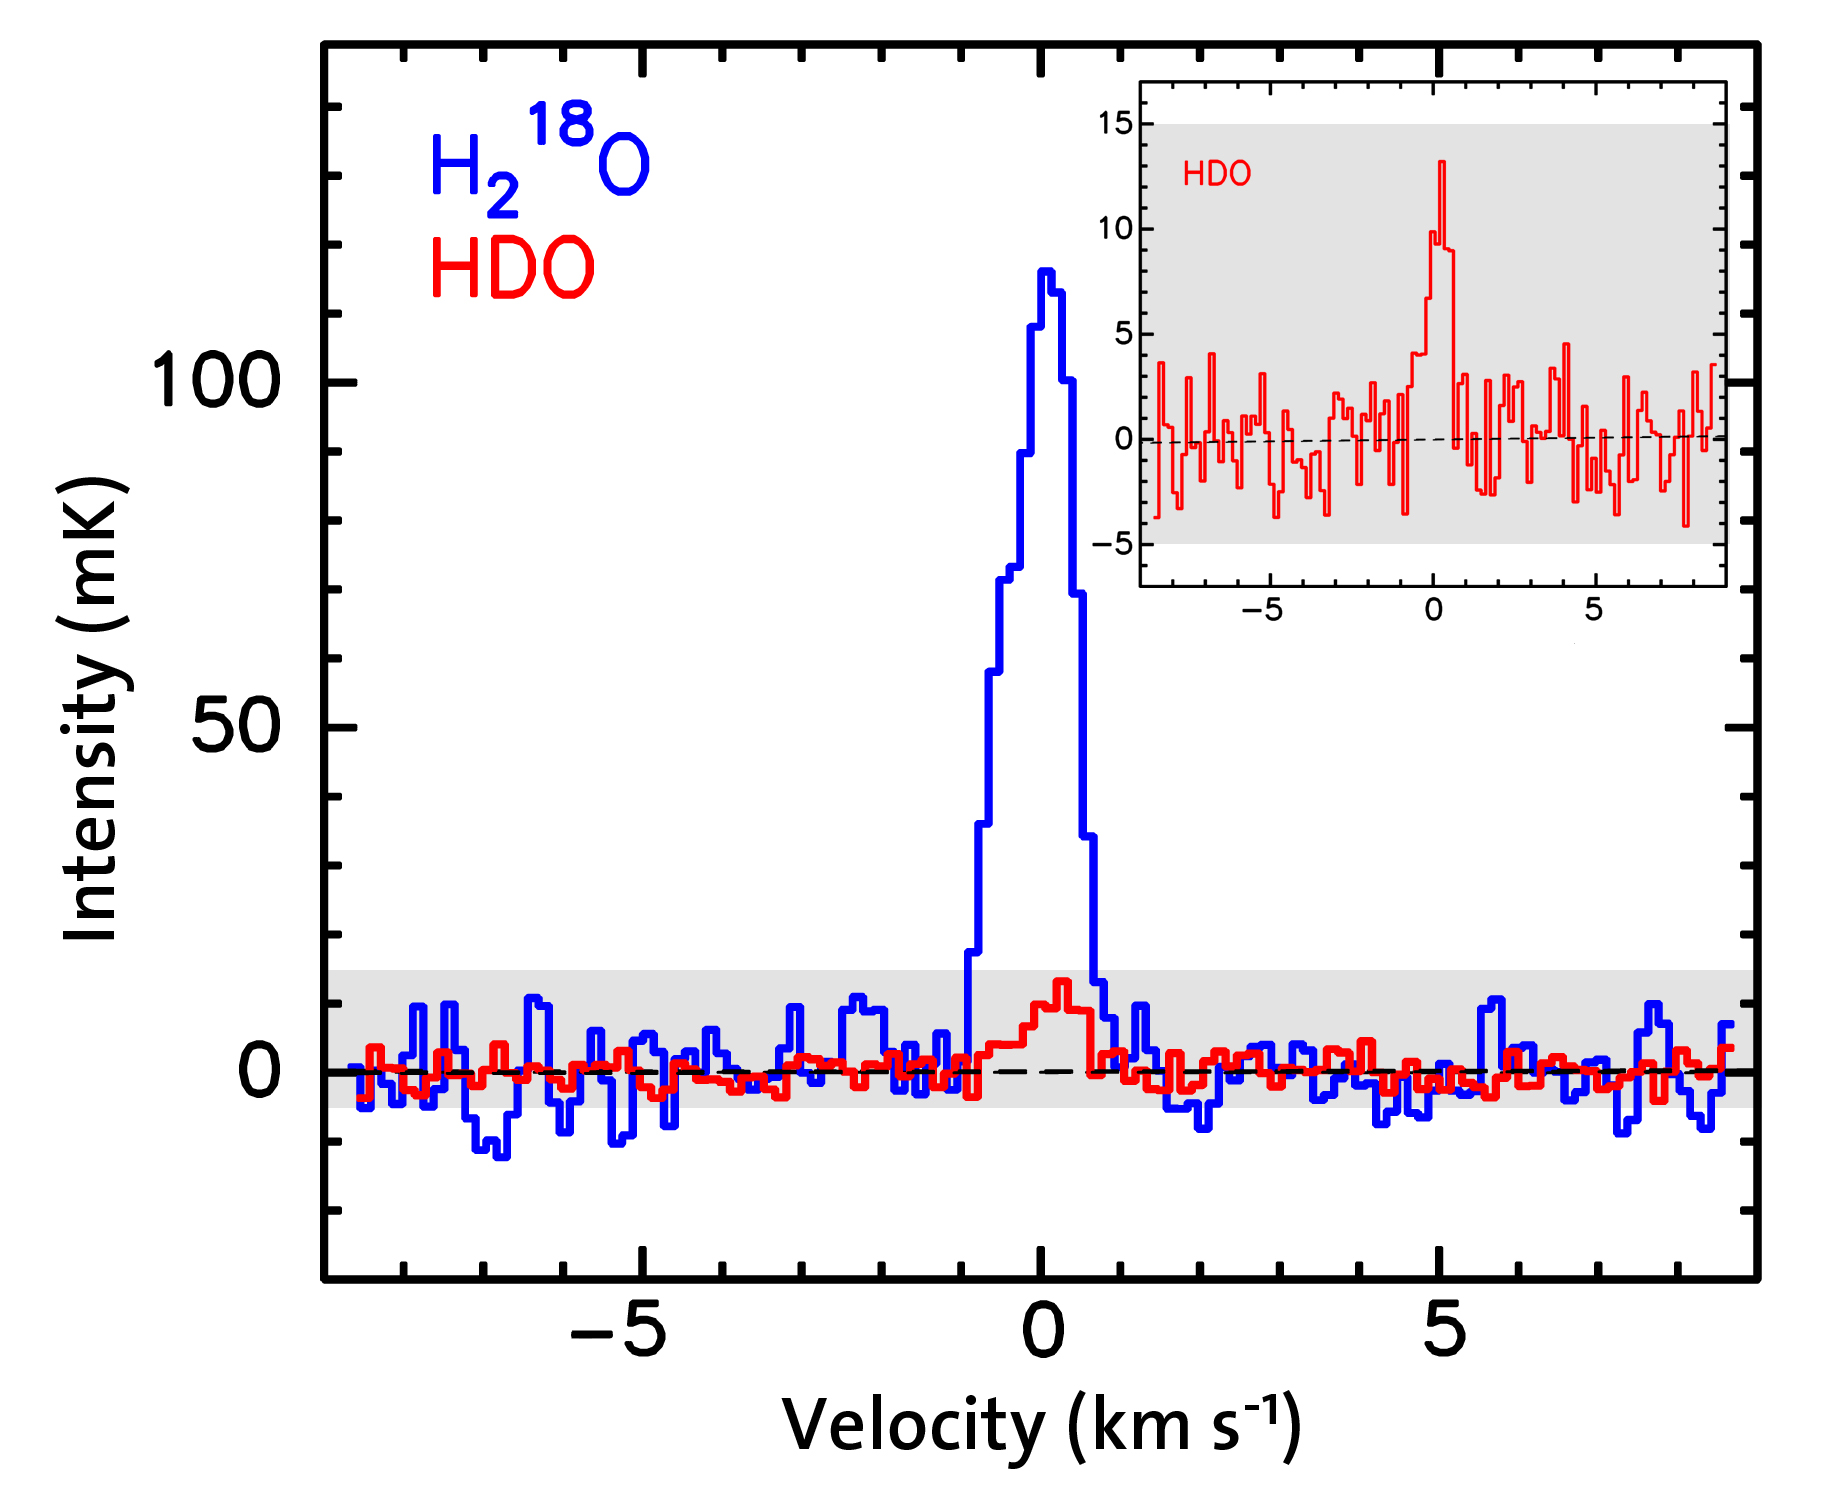 Water signatures in Herschel/HIFI spectrum of comet 103P/Hartley 2. Copyright: Courtesy of Paul Hartogh, Max-Planck-Institut für Sonnensystemforschung